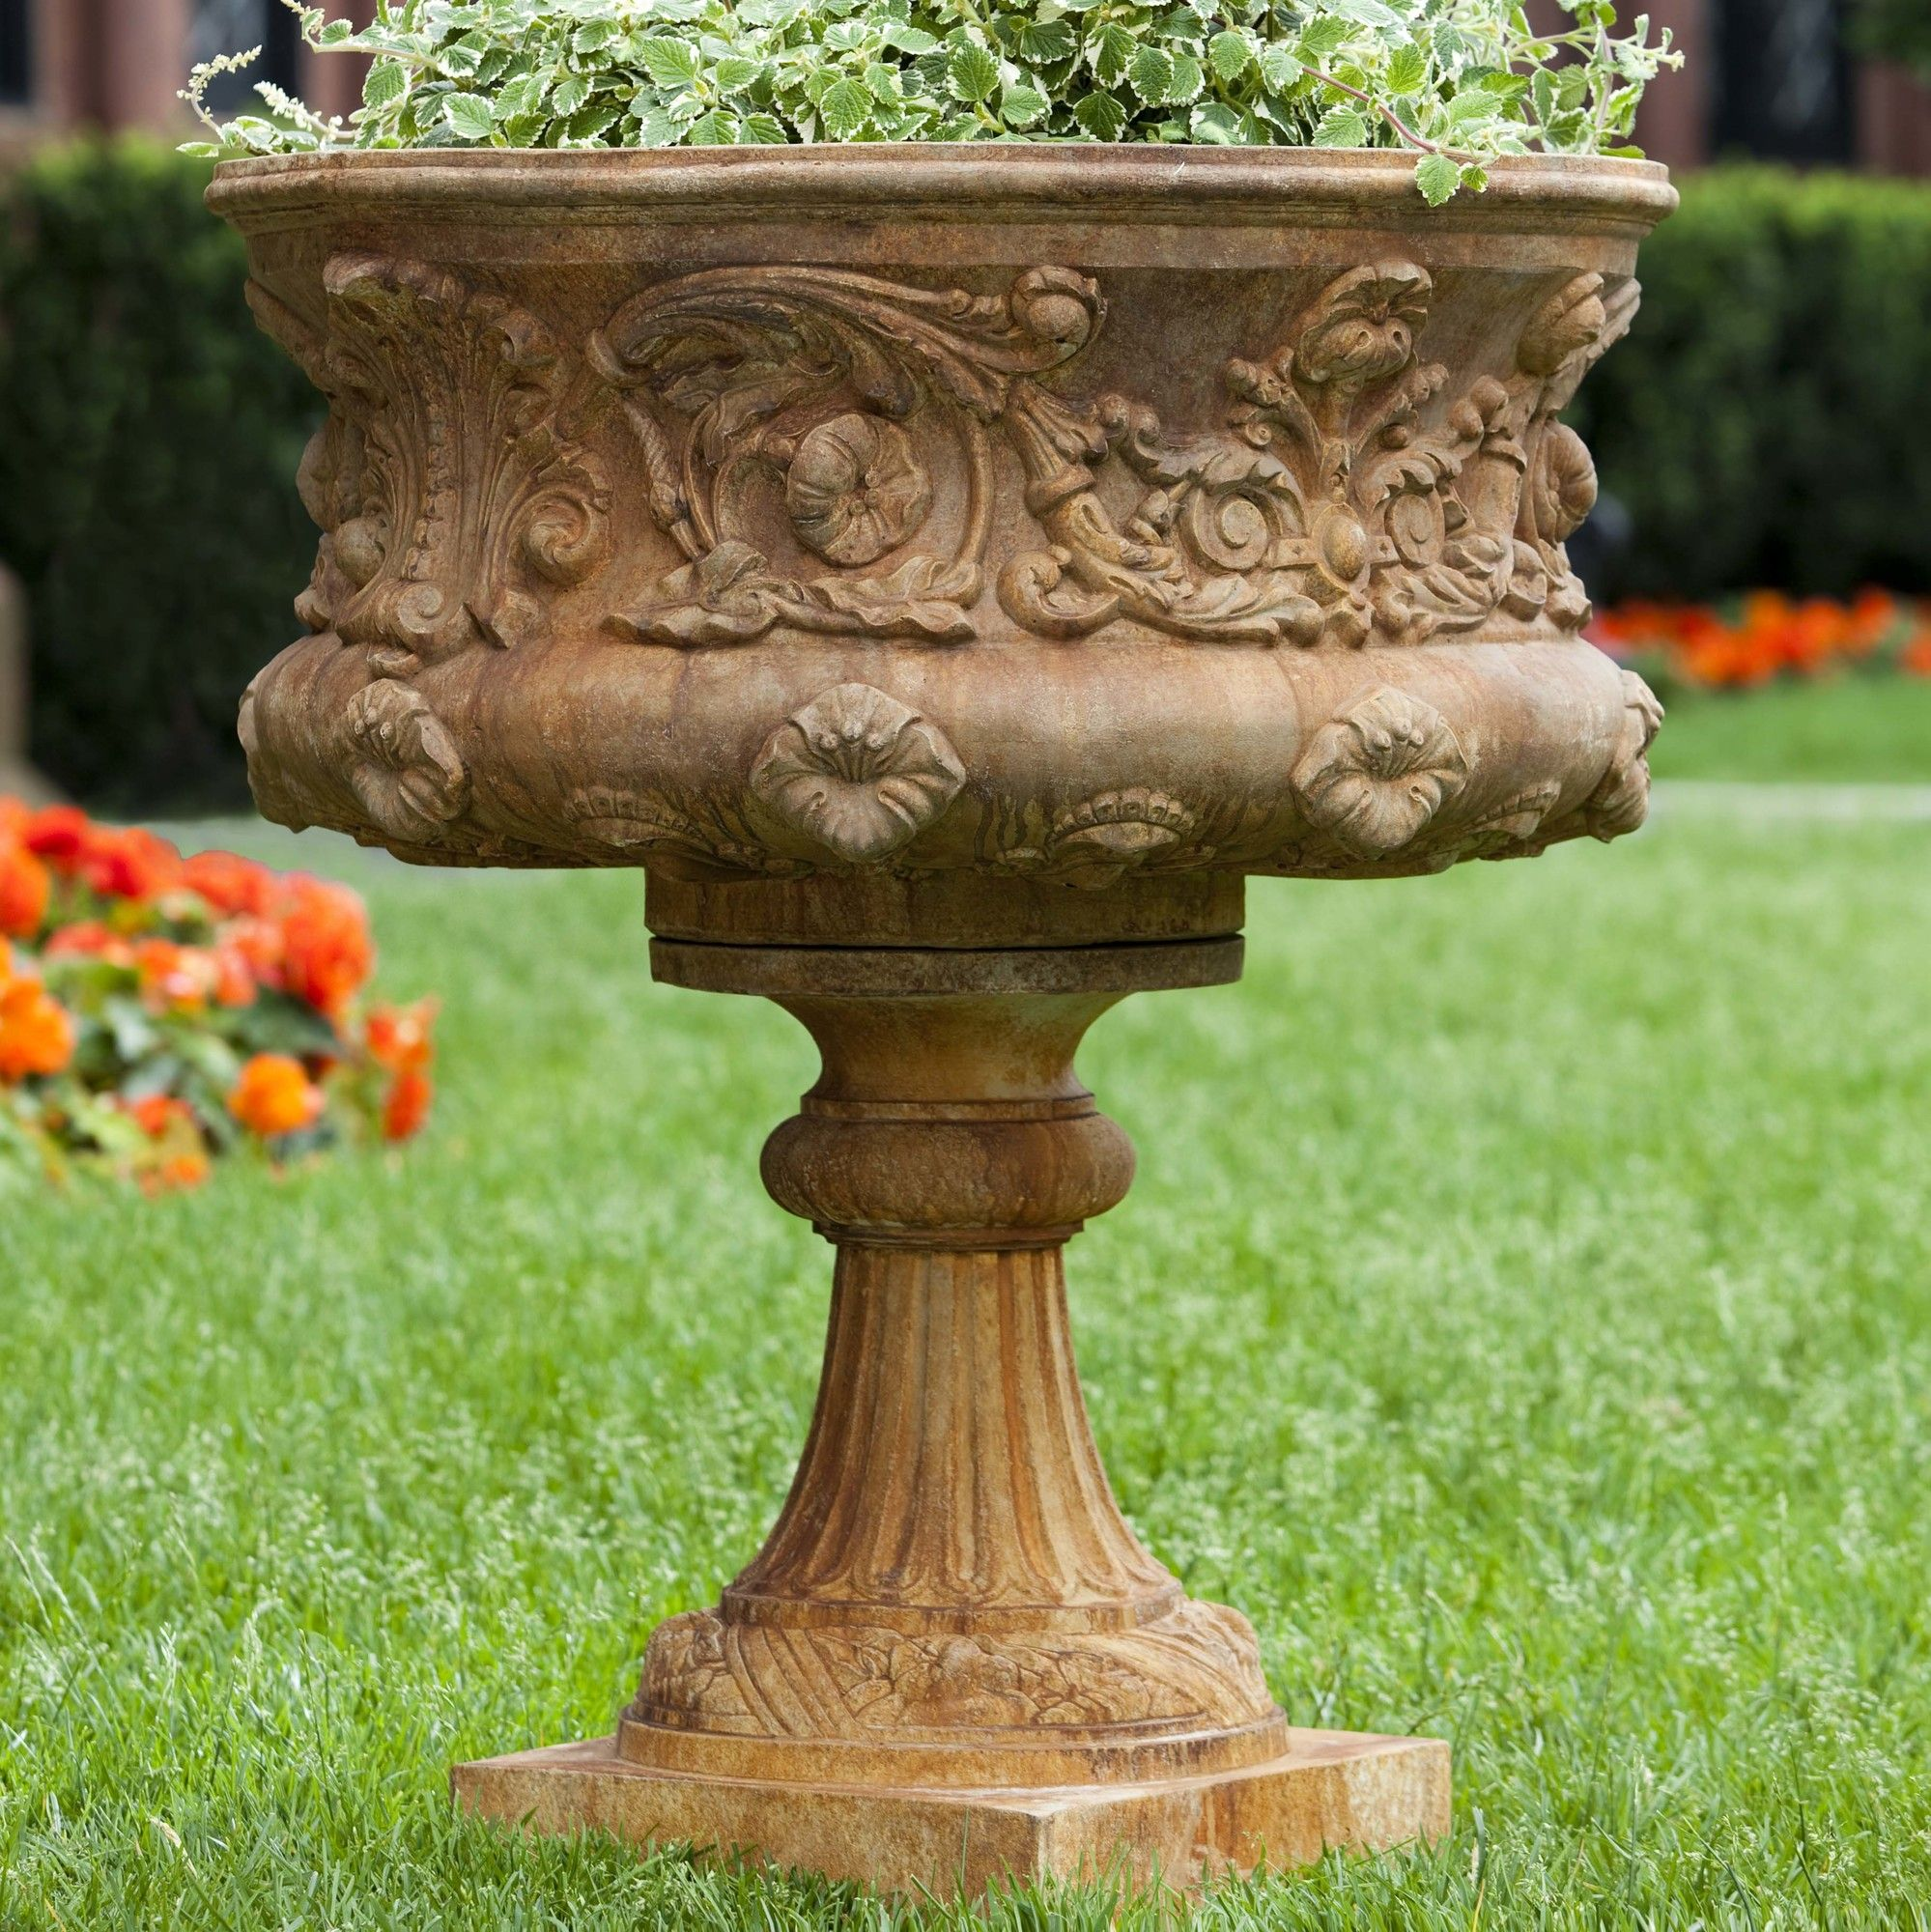 pros chesapeake art smithsonian urn planter garden outdoor urns products